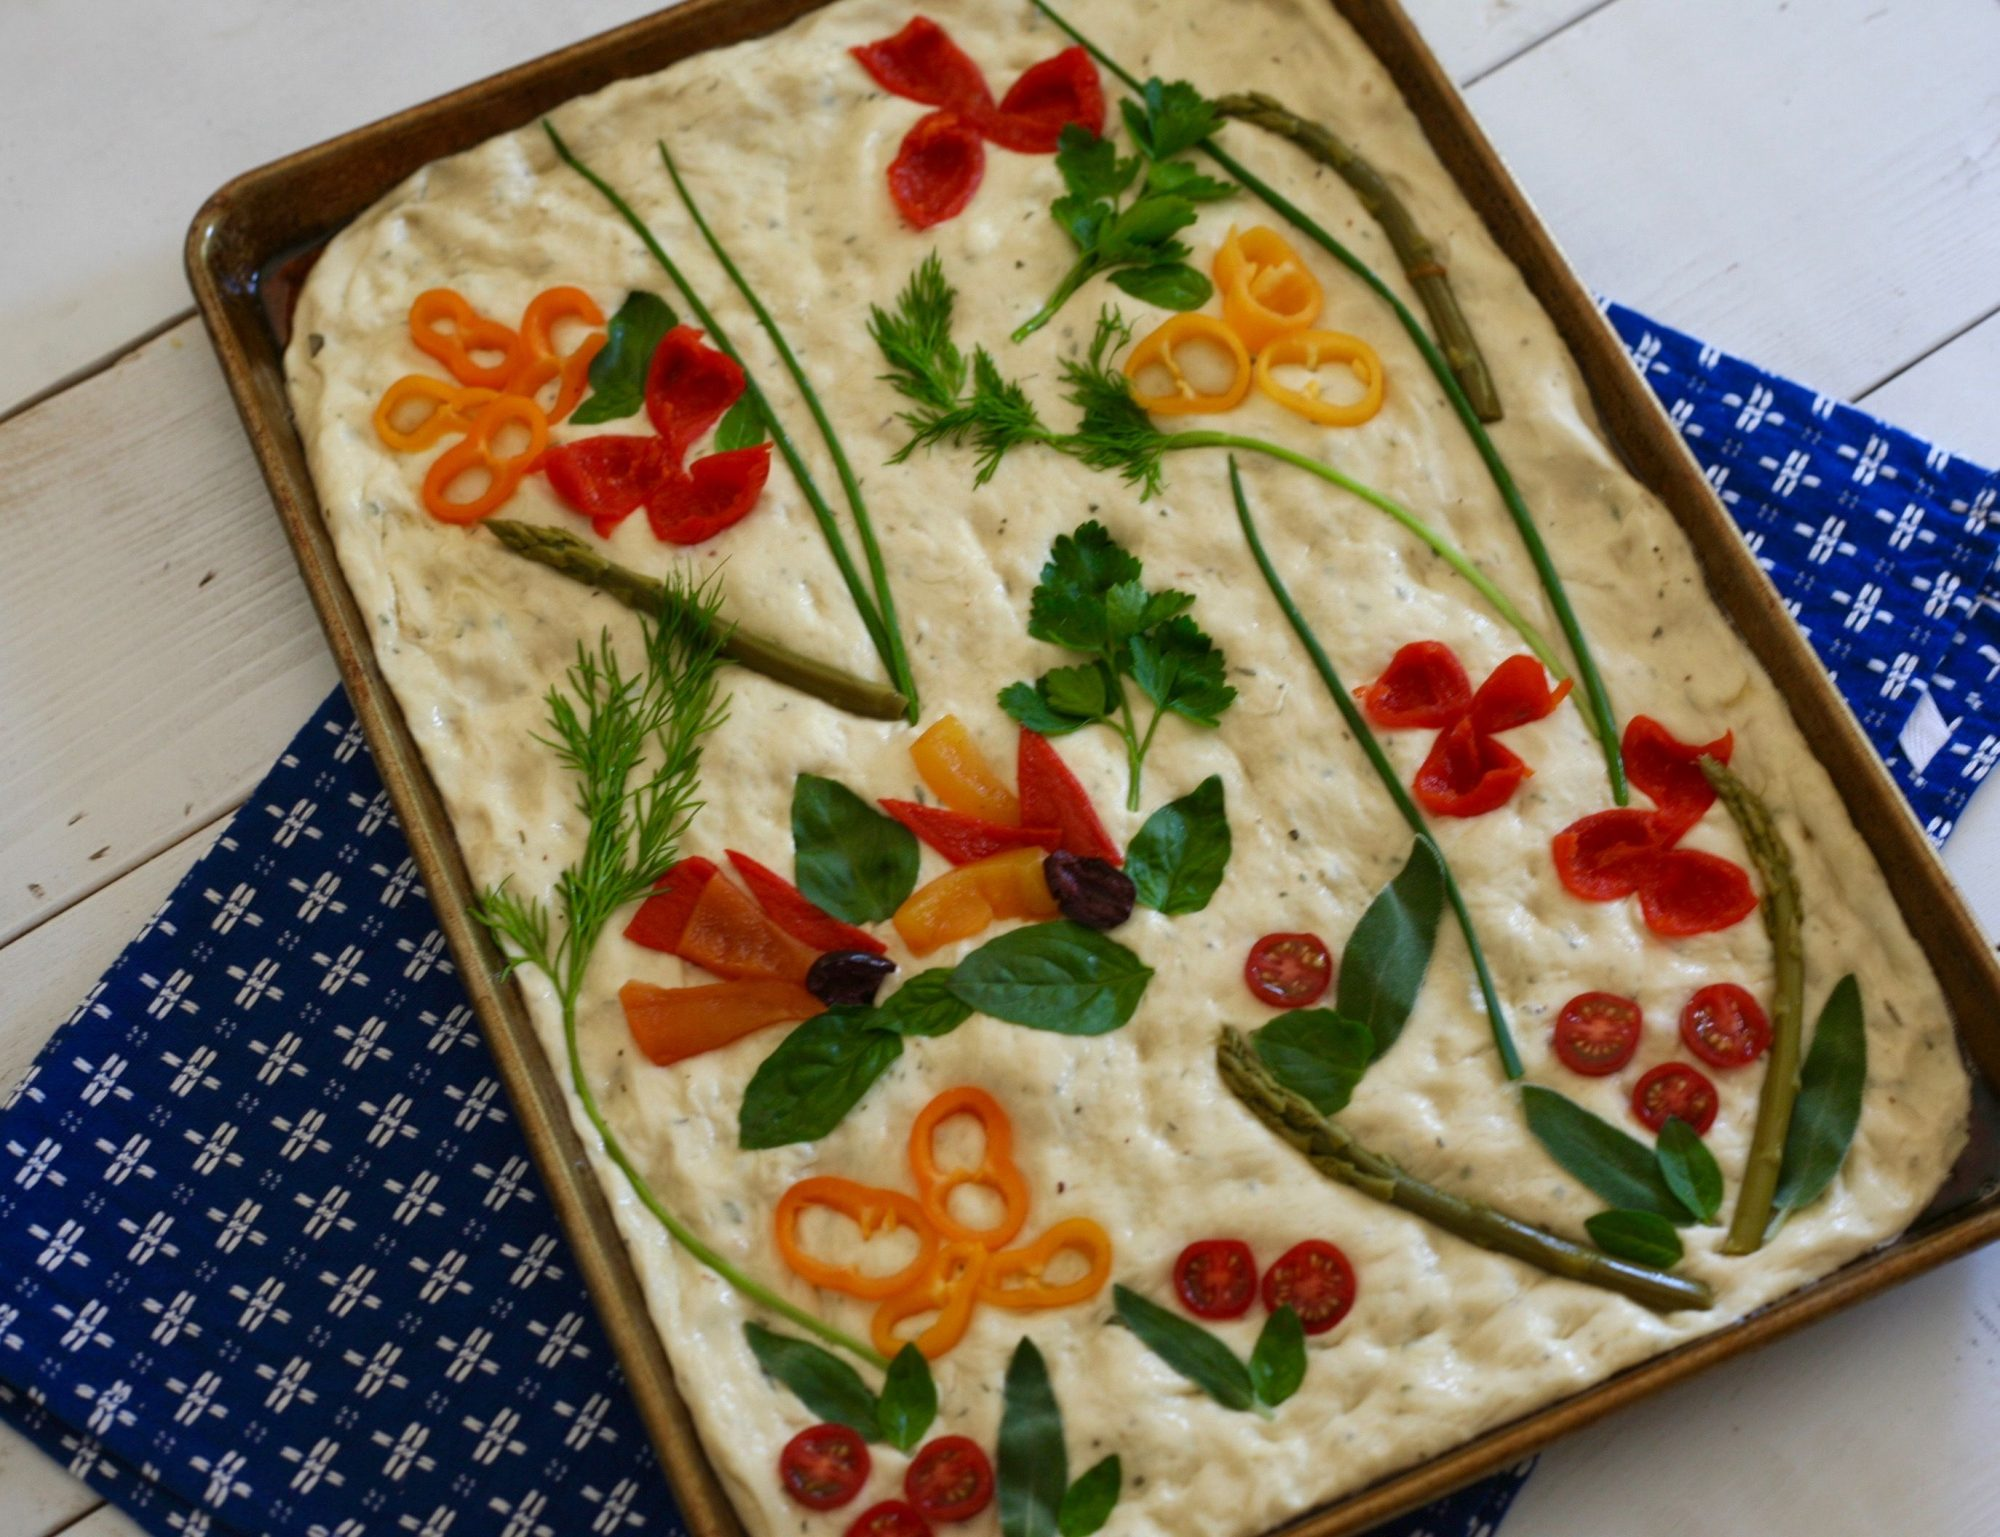 decorating focaccia dough with vegetables and herbs